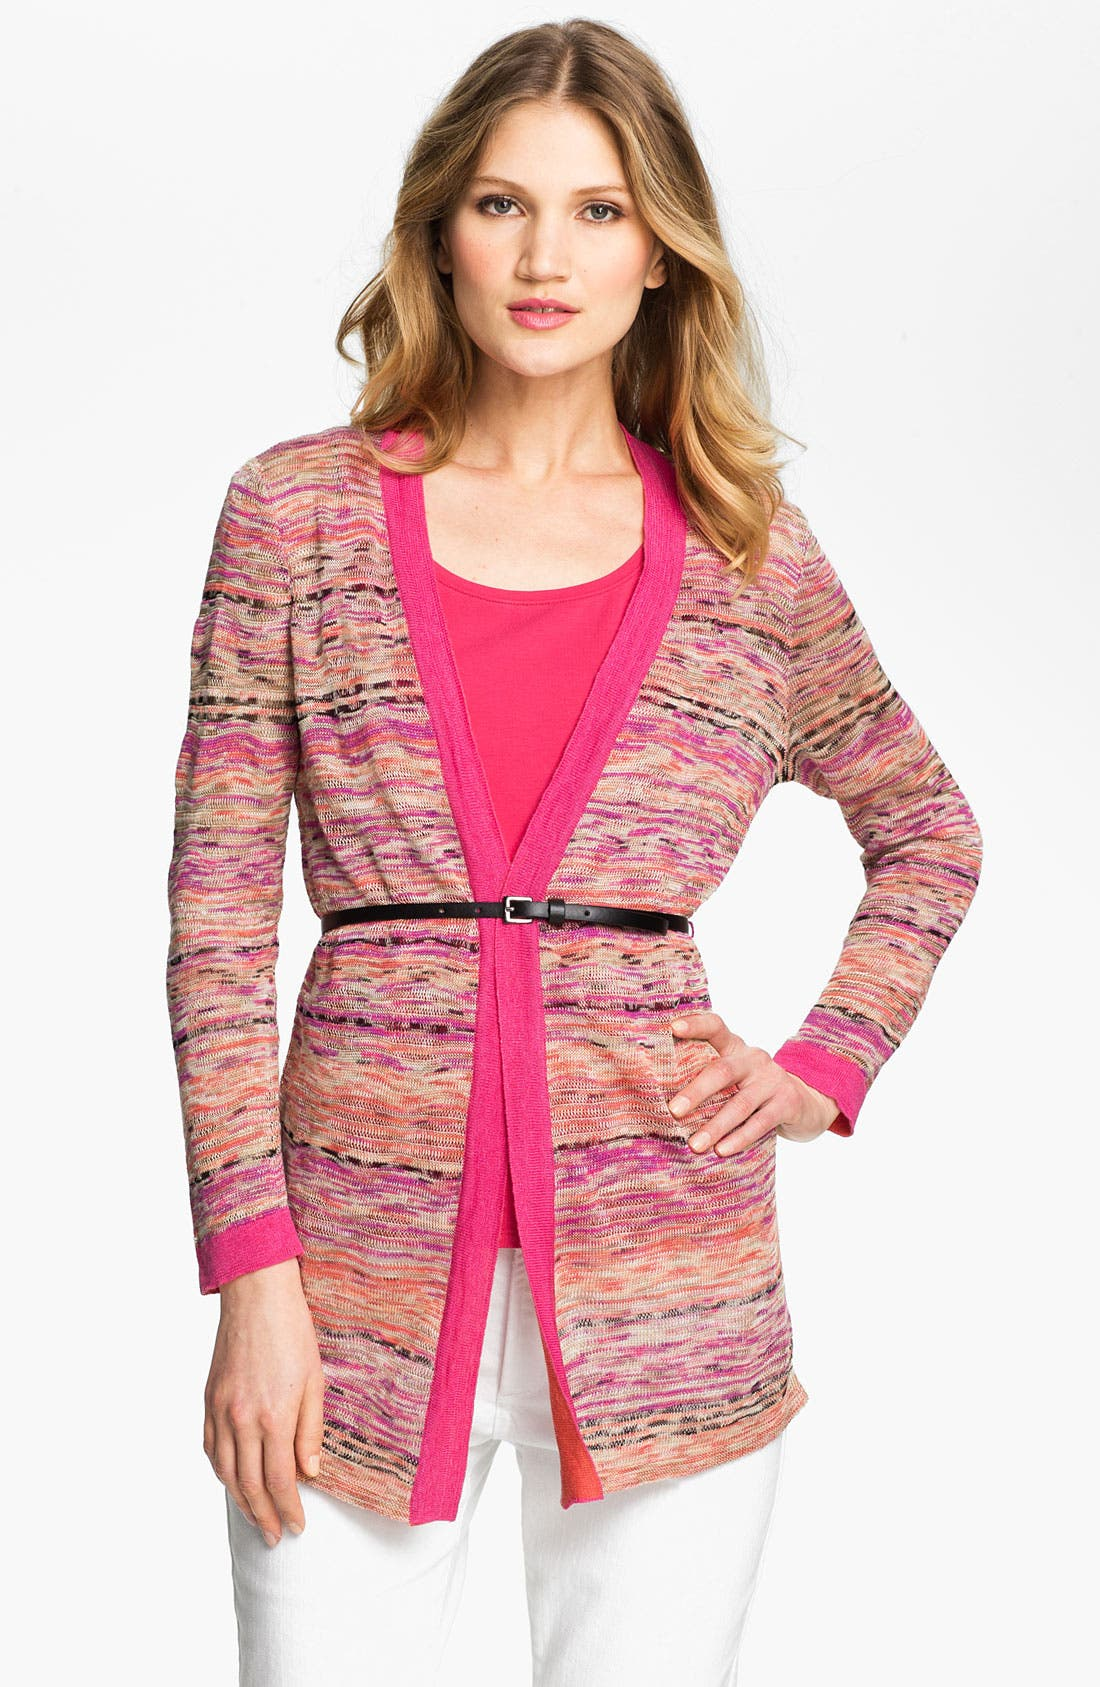 Alternate Image 1 Selected - Nic + Zoe 'Heat Mix' Belted Cardigan